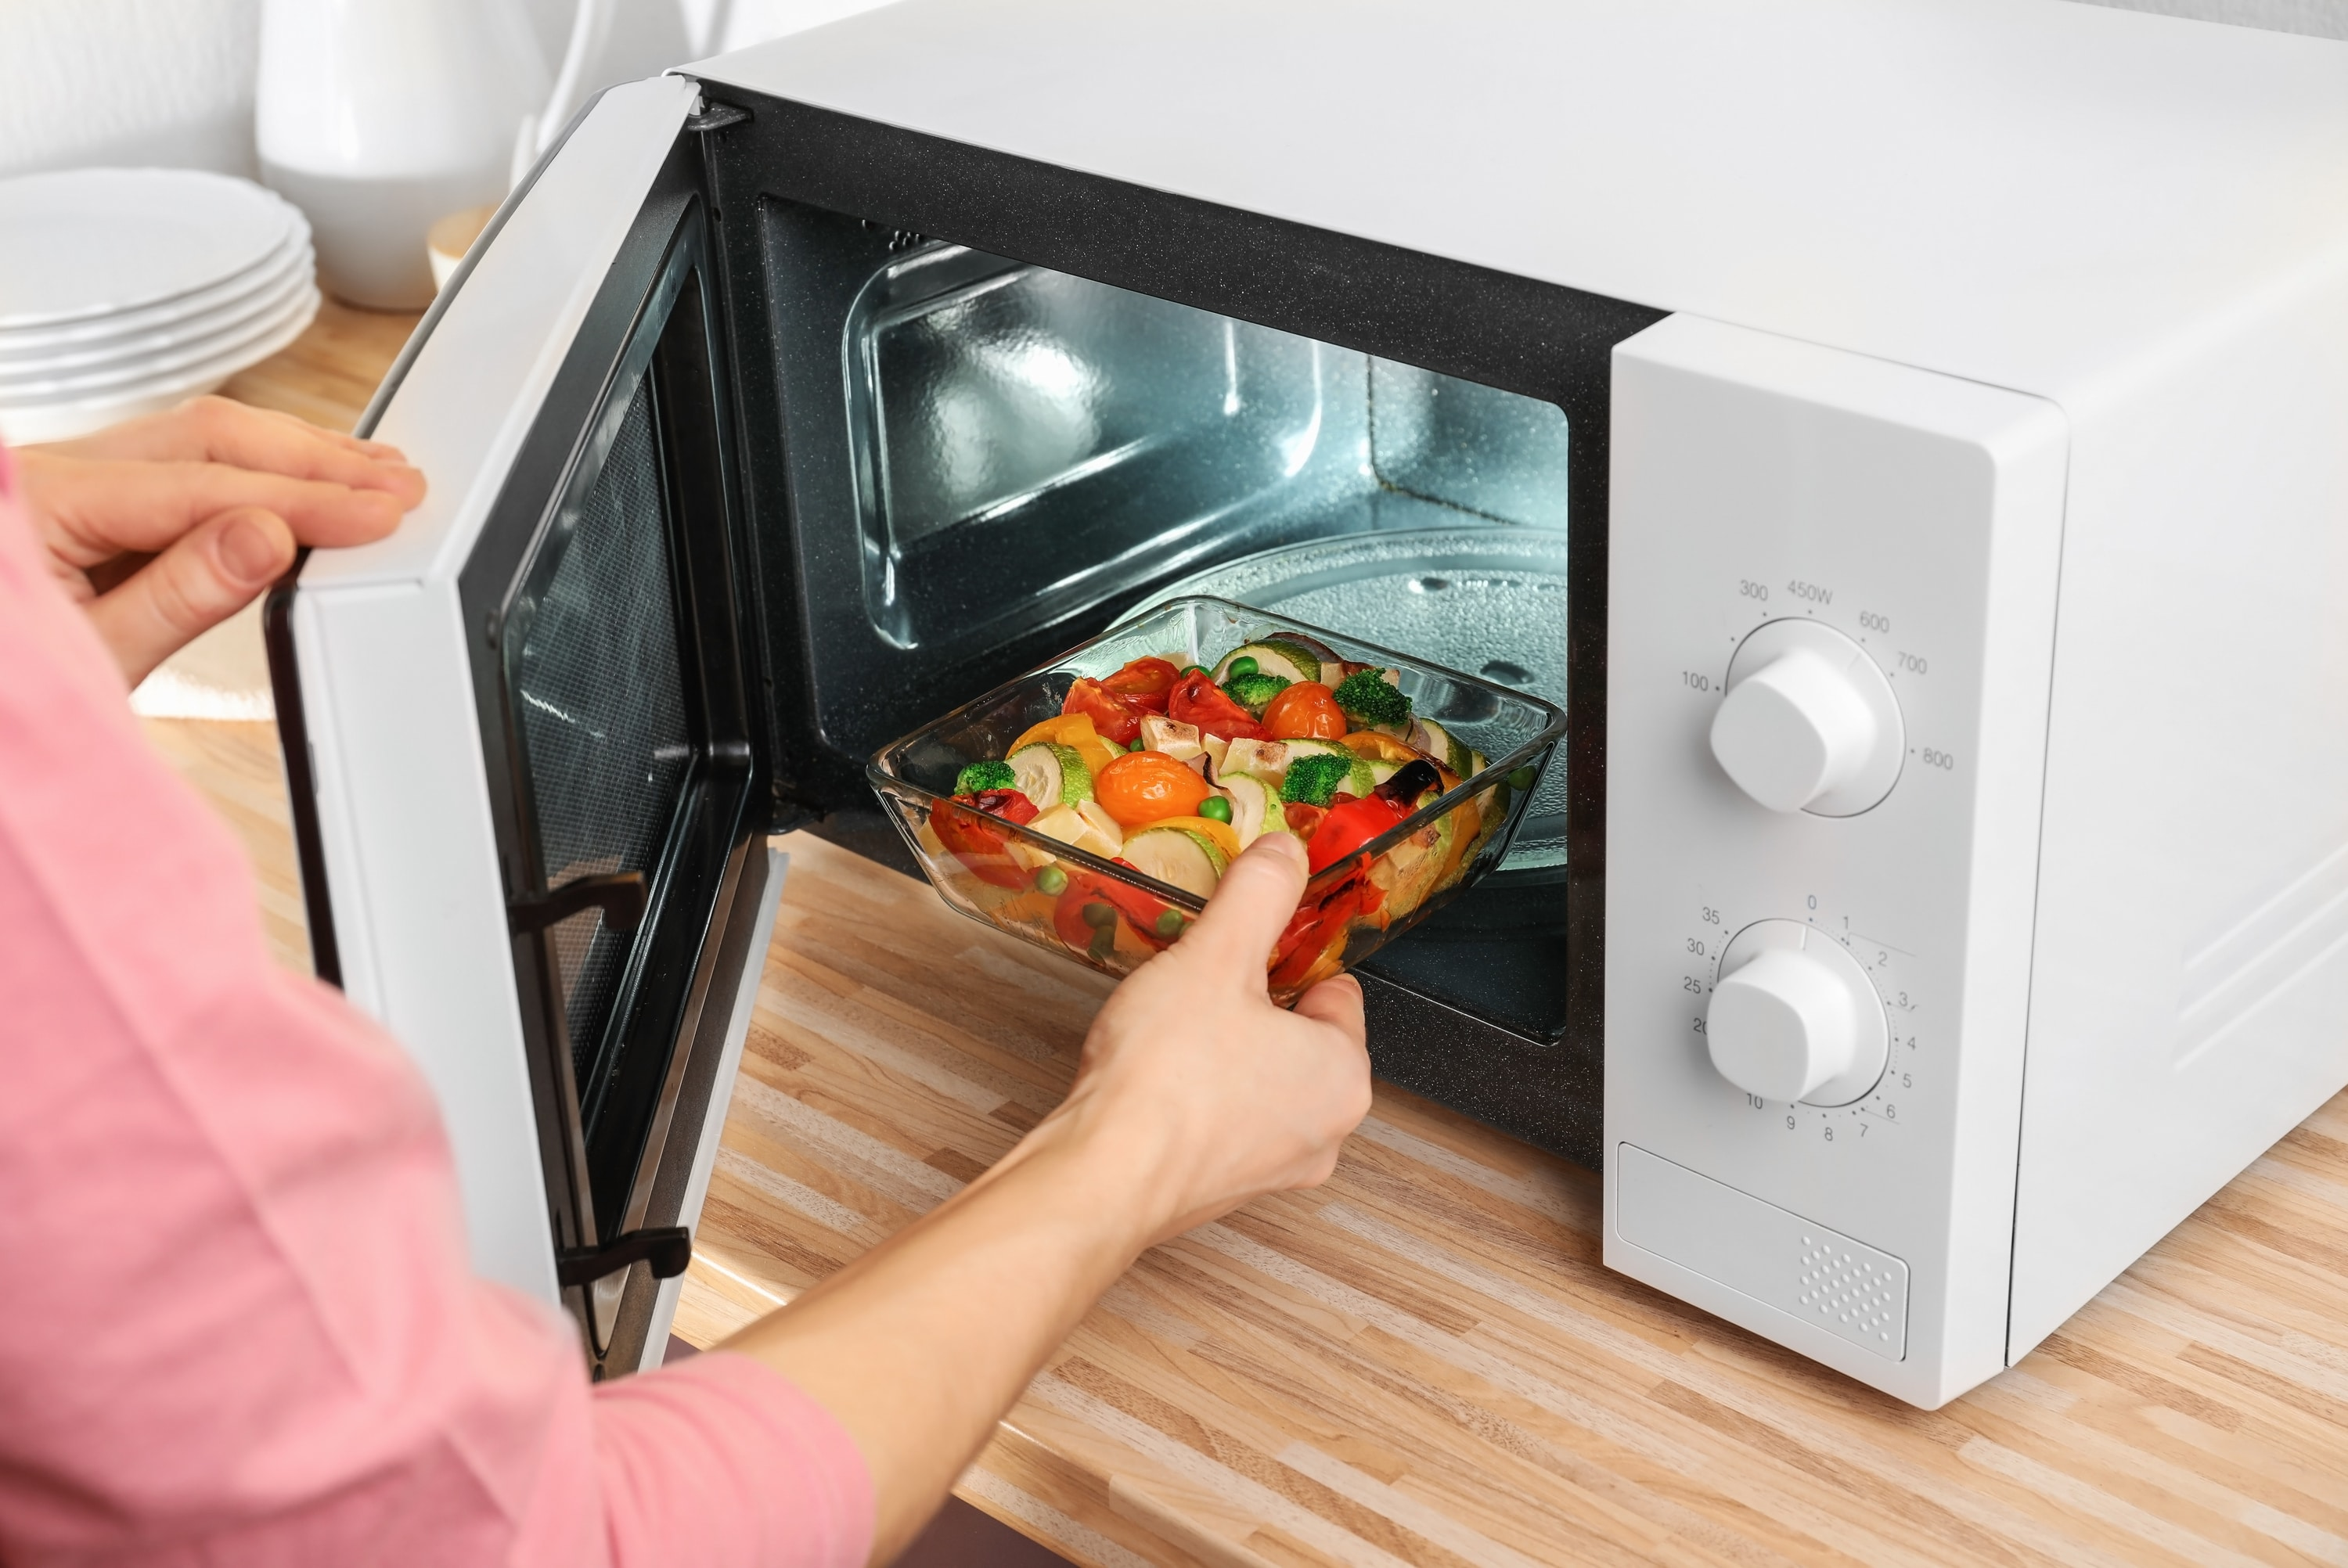 9 ways microwave cooking can save you money